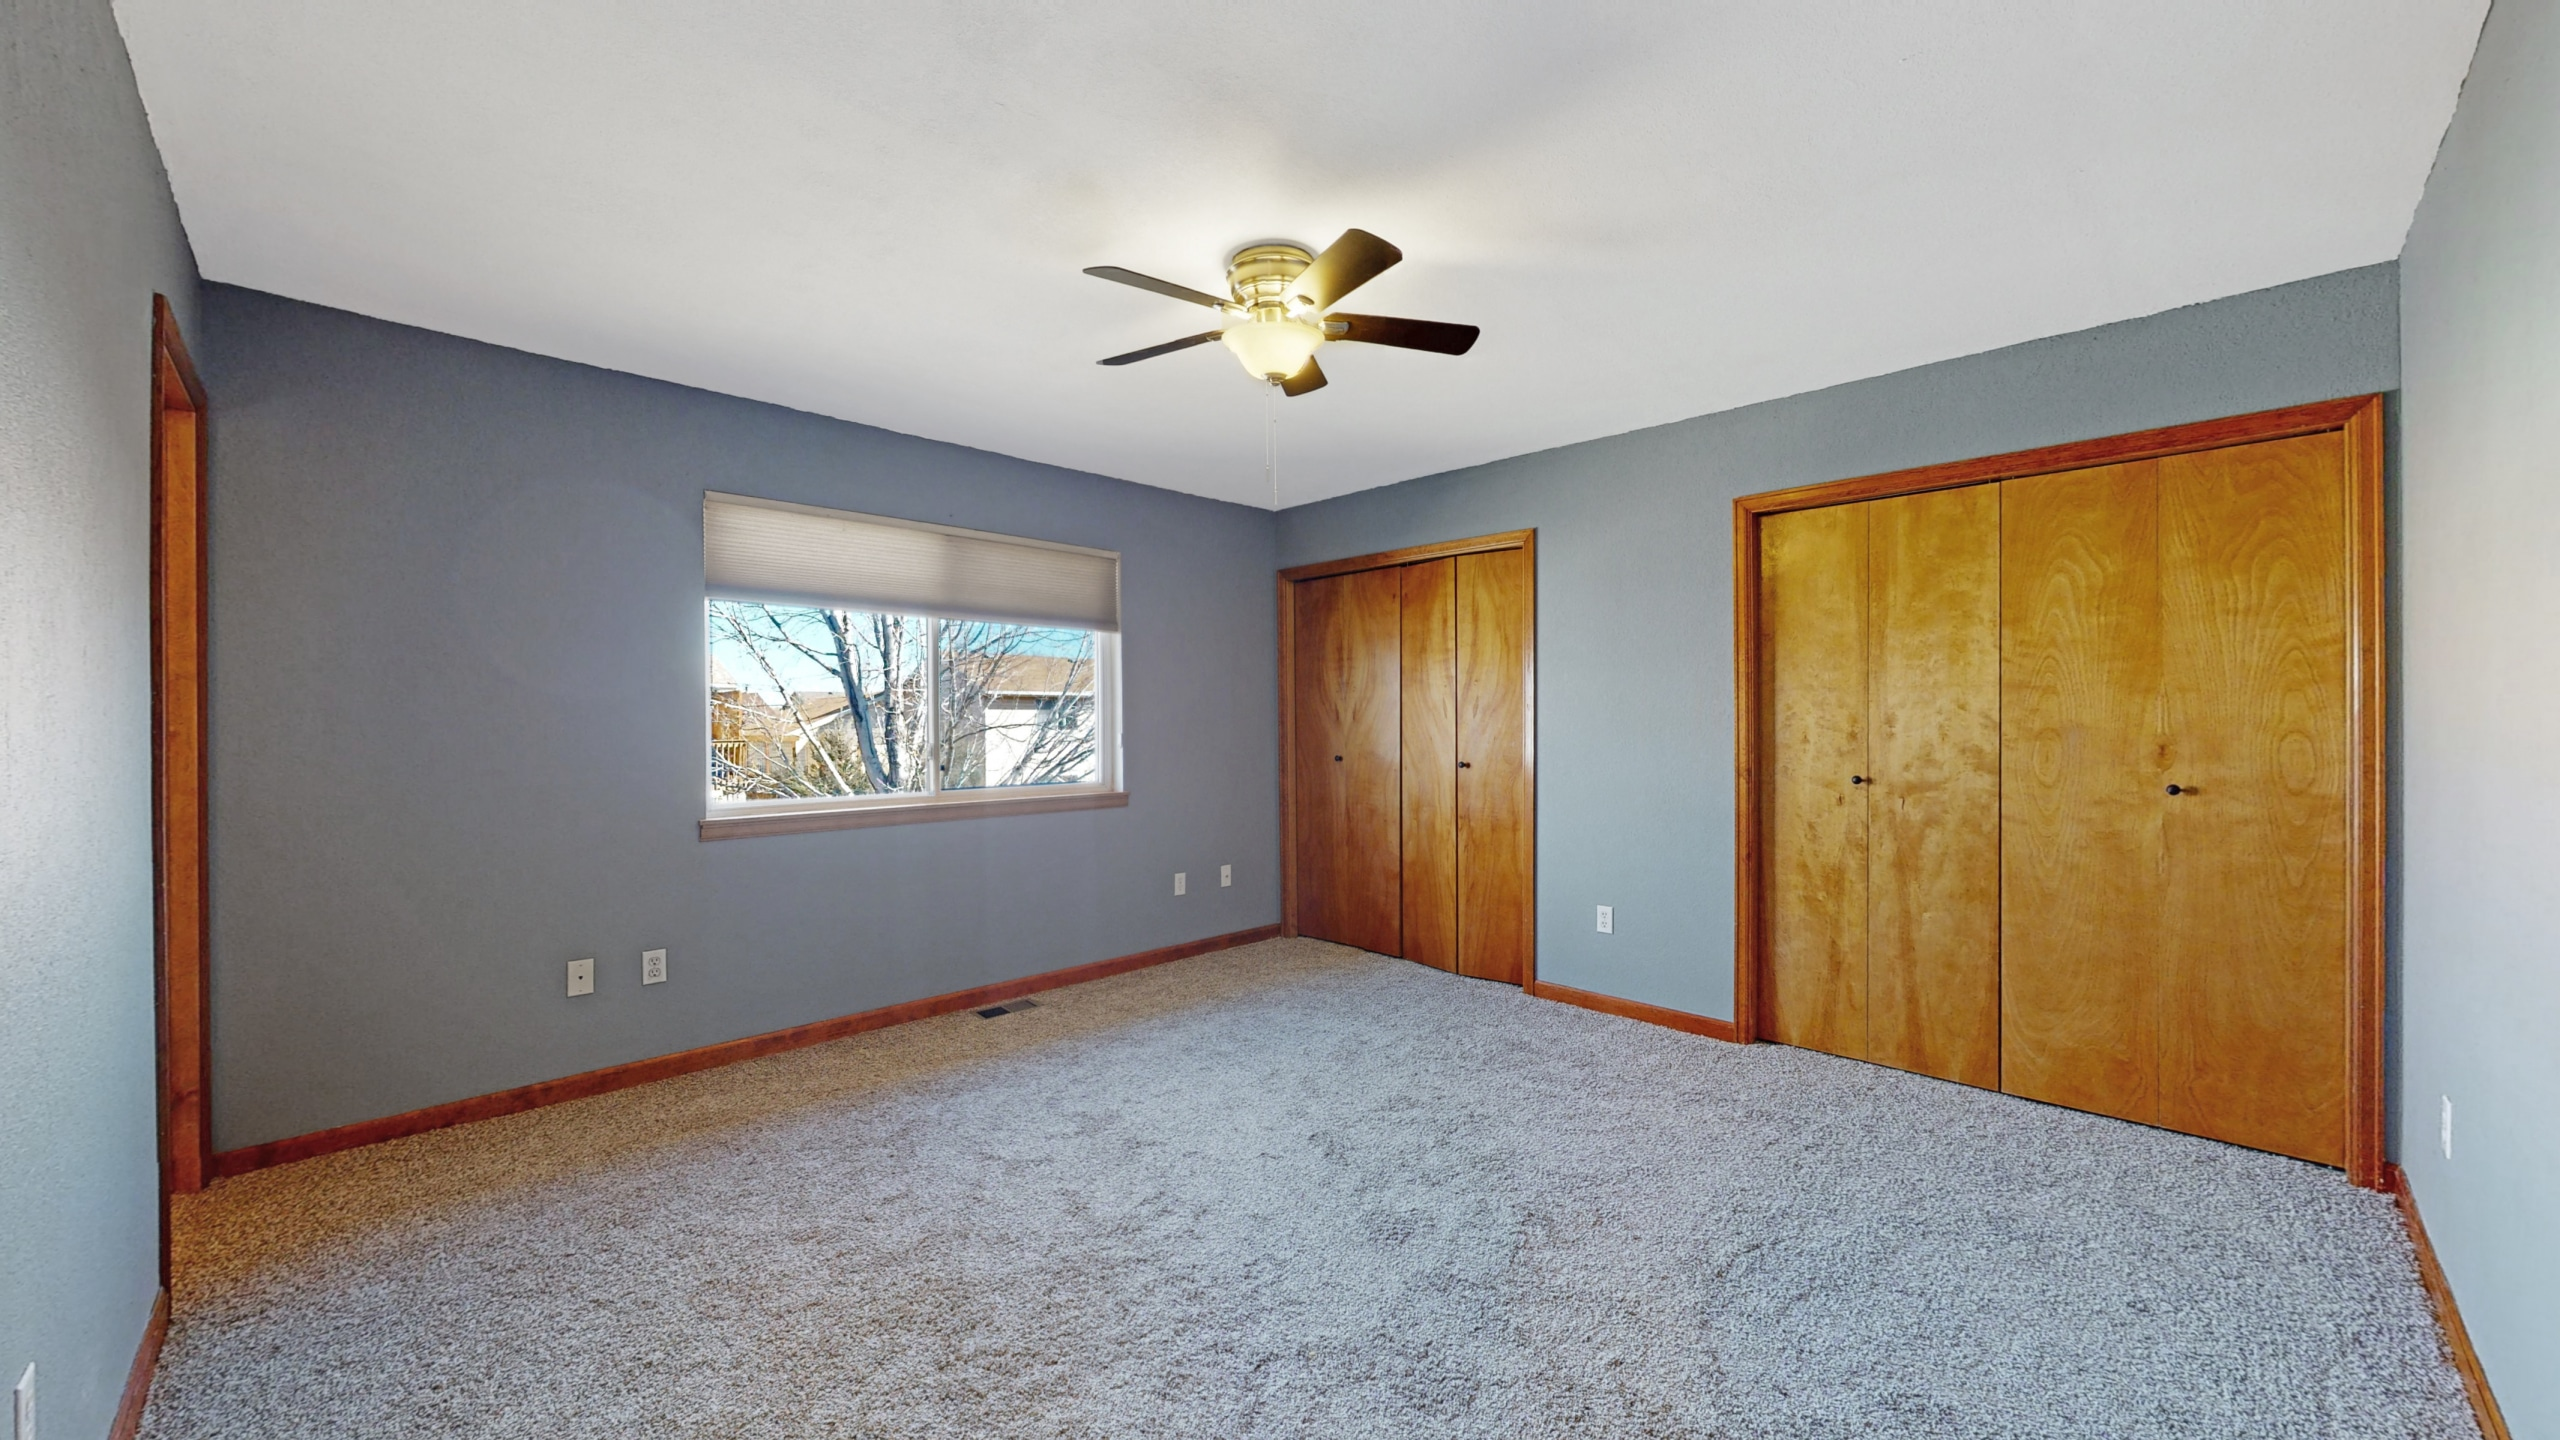 Brighton house for sale master bedroom with double closets and blue walls